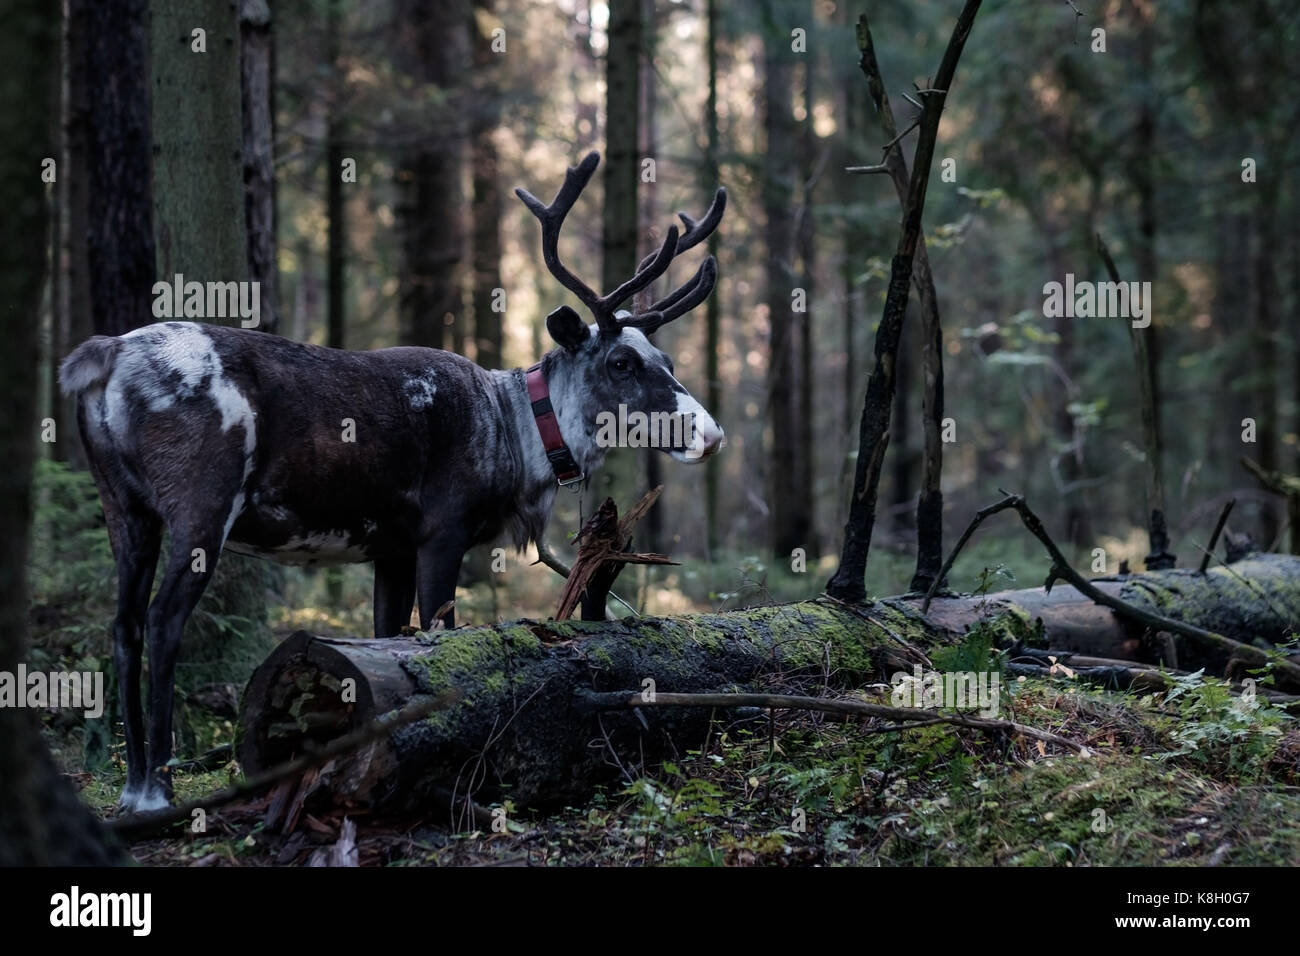 A reindeer with big horns walks through a dark forest in autumn. - Stock Image